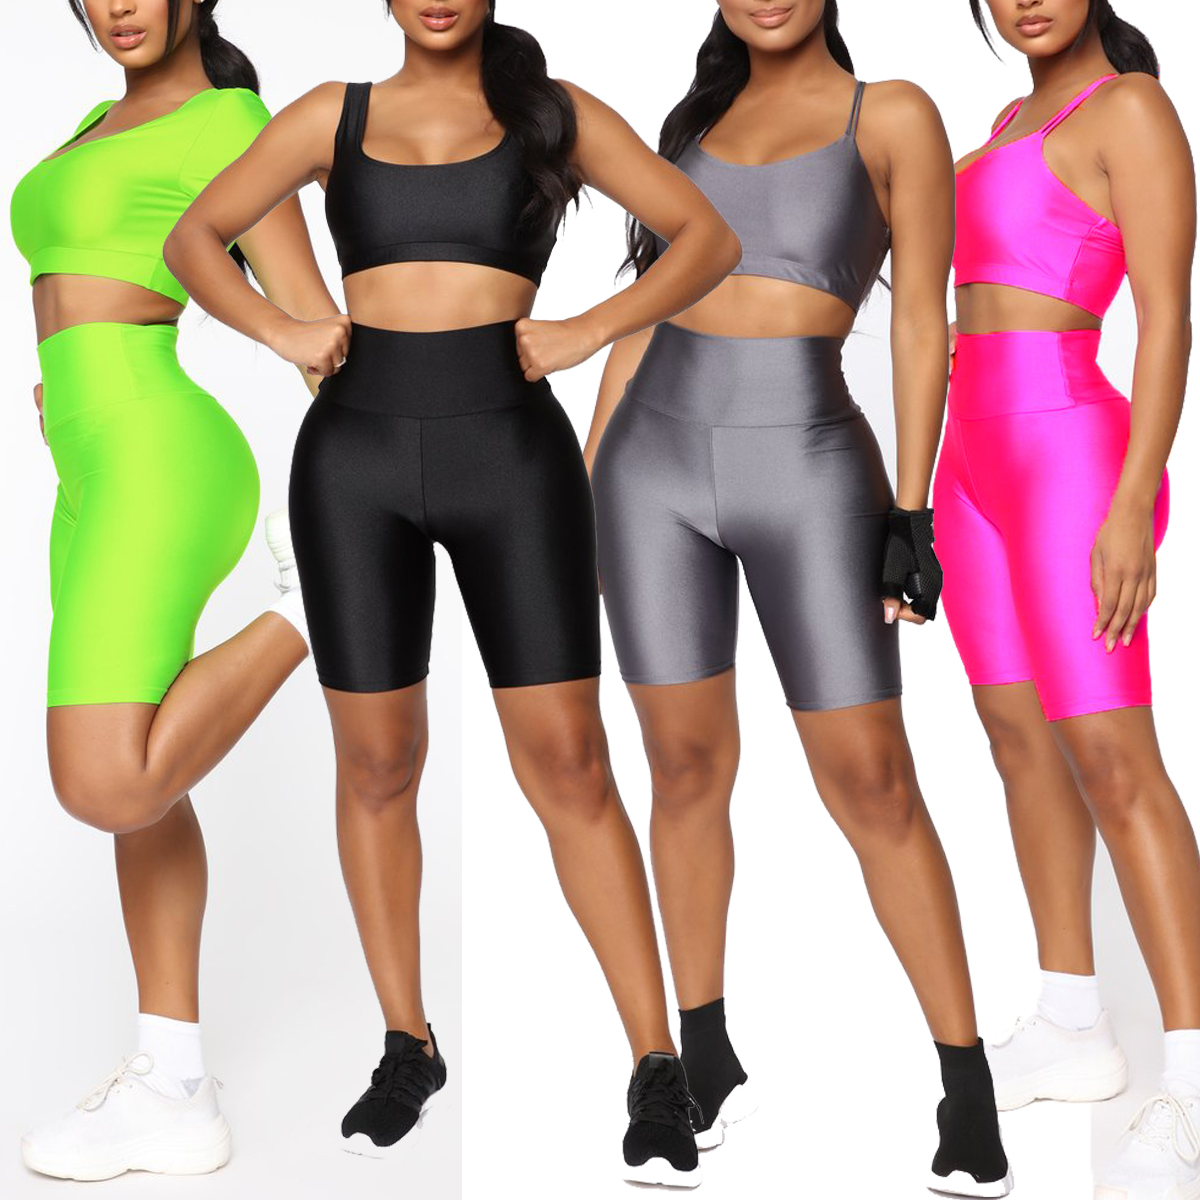 H5b53c7ec28f148c0b8bbb79c60aee8c6o - Womens Plain Sports Gym Cycling Skinny Fit High Waist Shorts Lady Summer Casual Solid Basic Stretchy Bodycon Short Pants